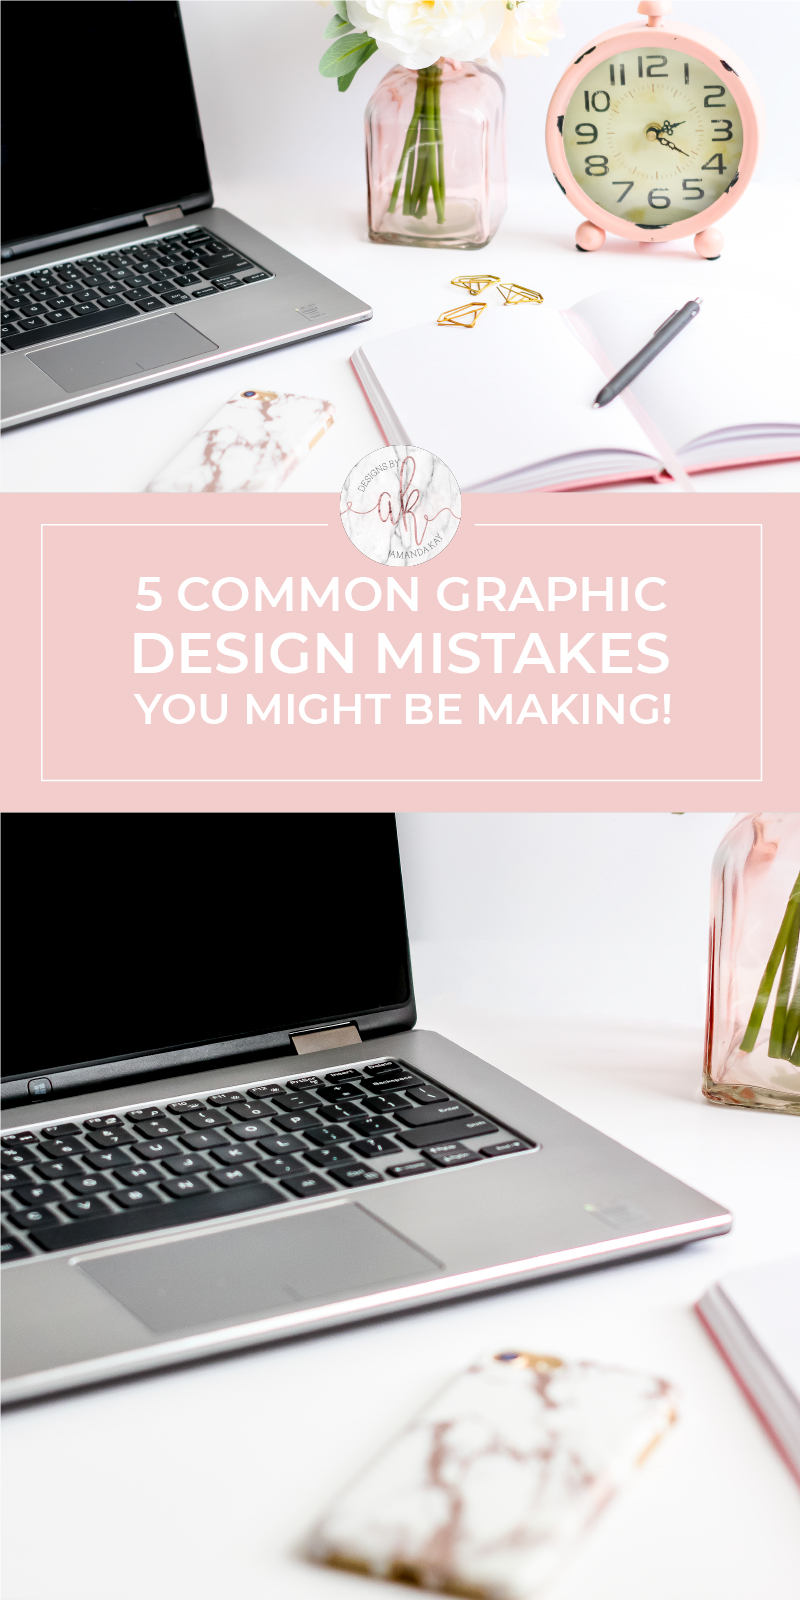 5 Common Graphic Design Mistakes